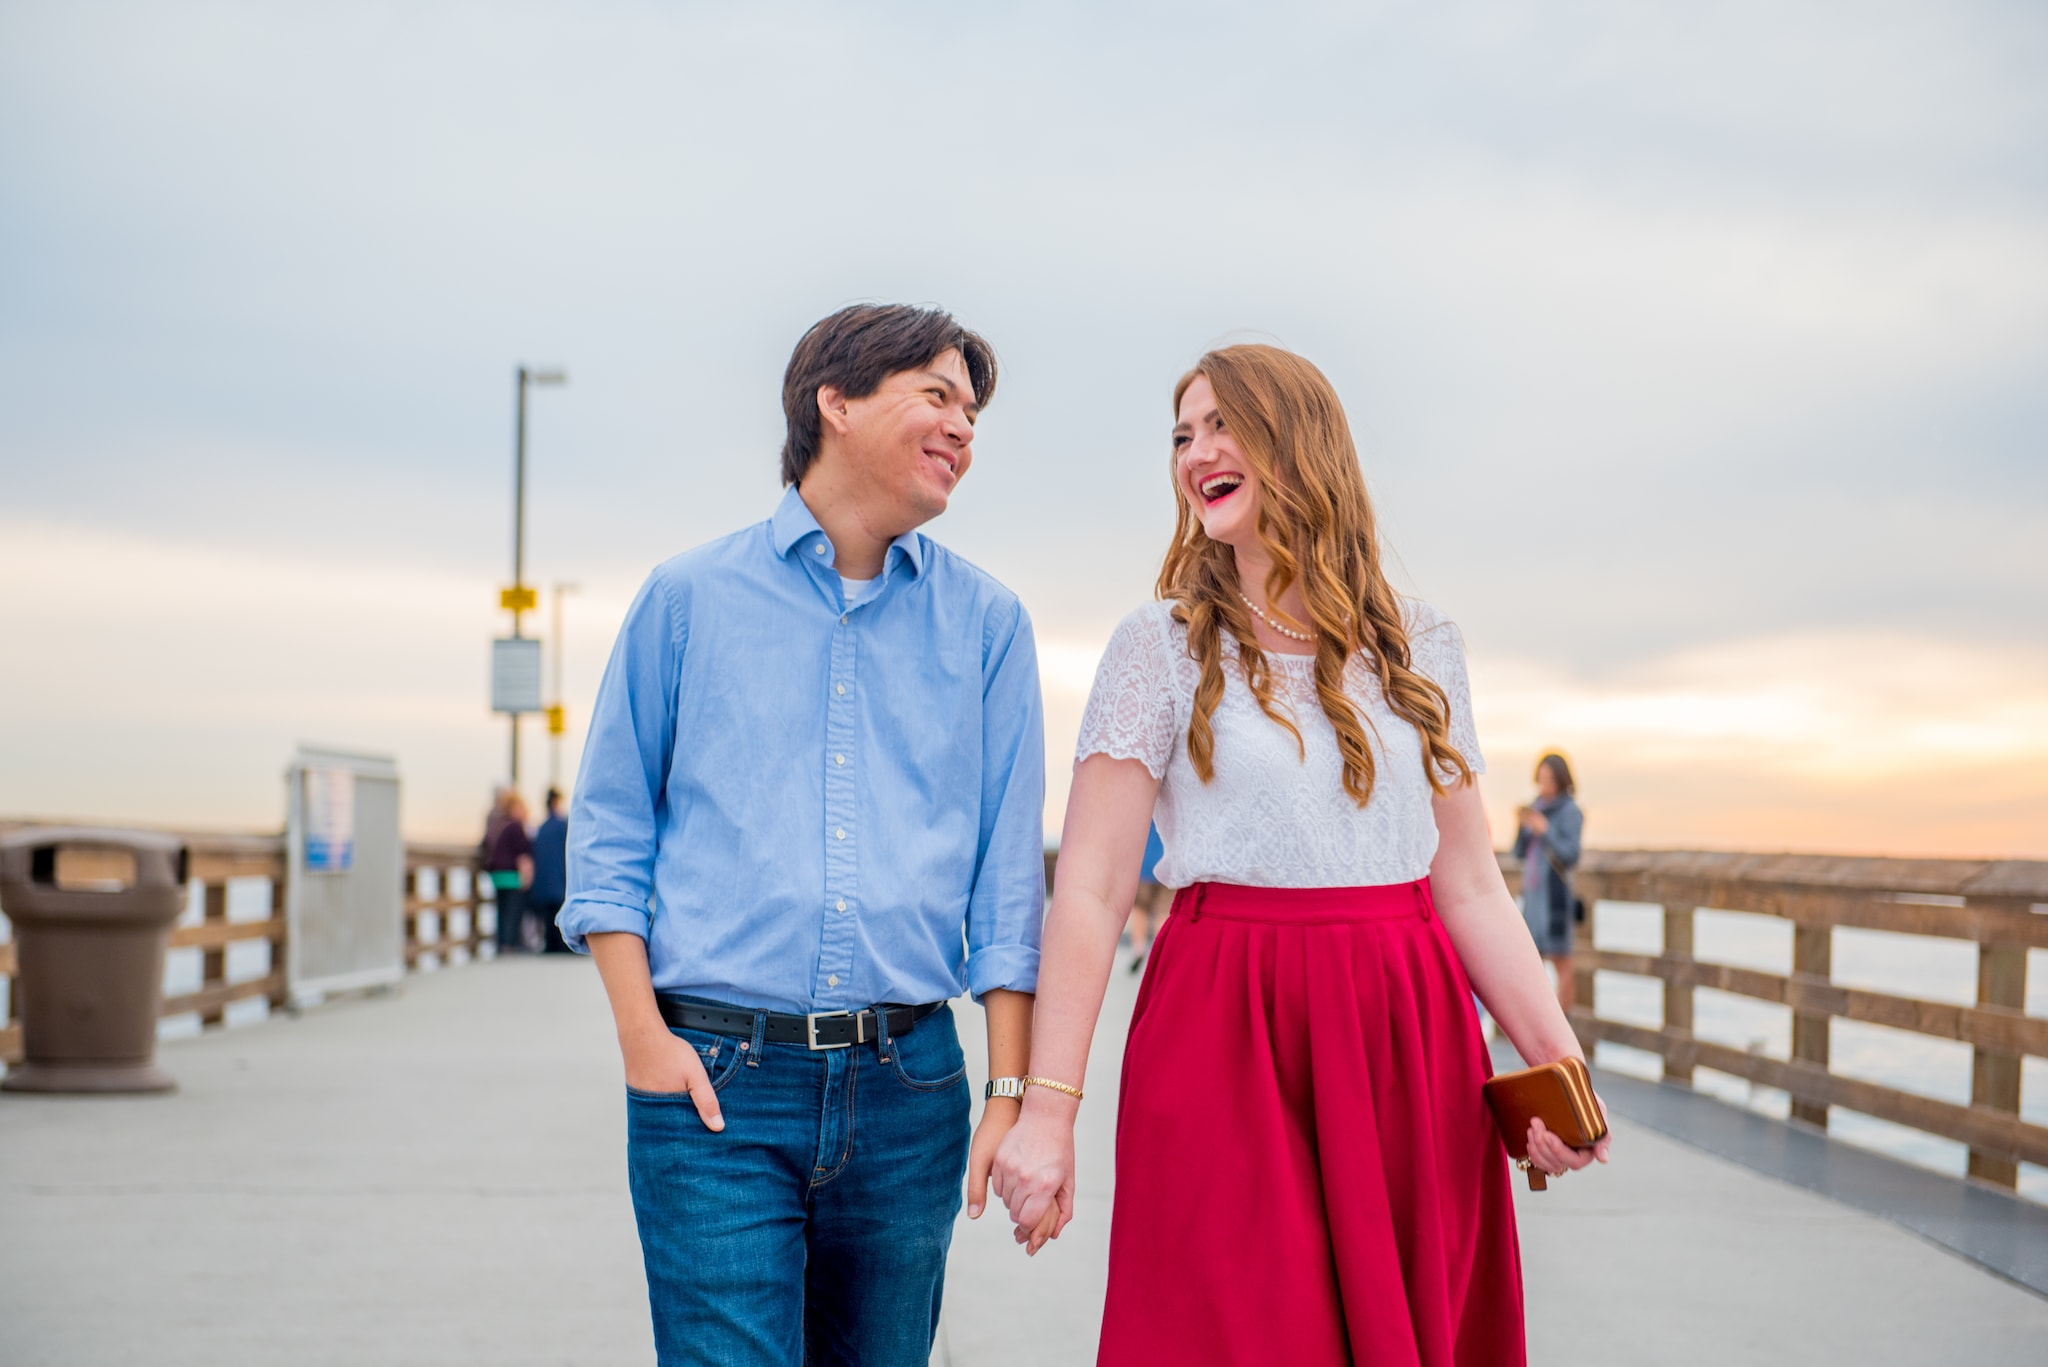 Man wearing blue shirt and jeans holding hand with woman wearing white shirt and pink skirt while walking on the boardwalk